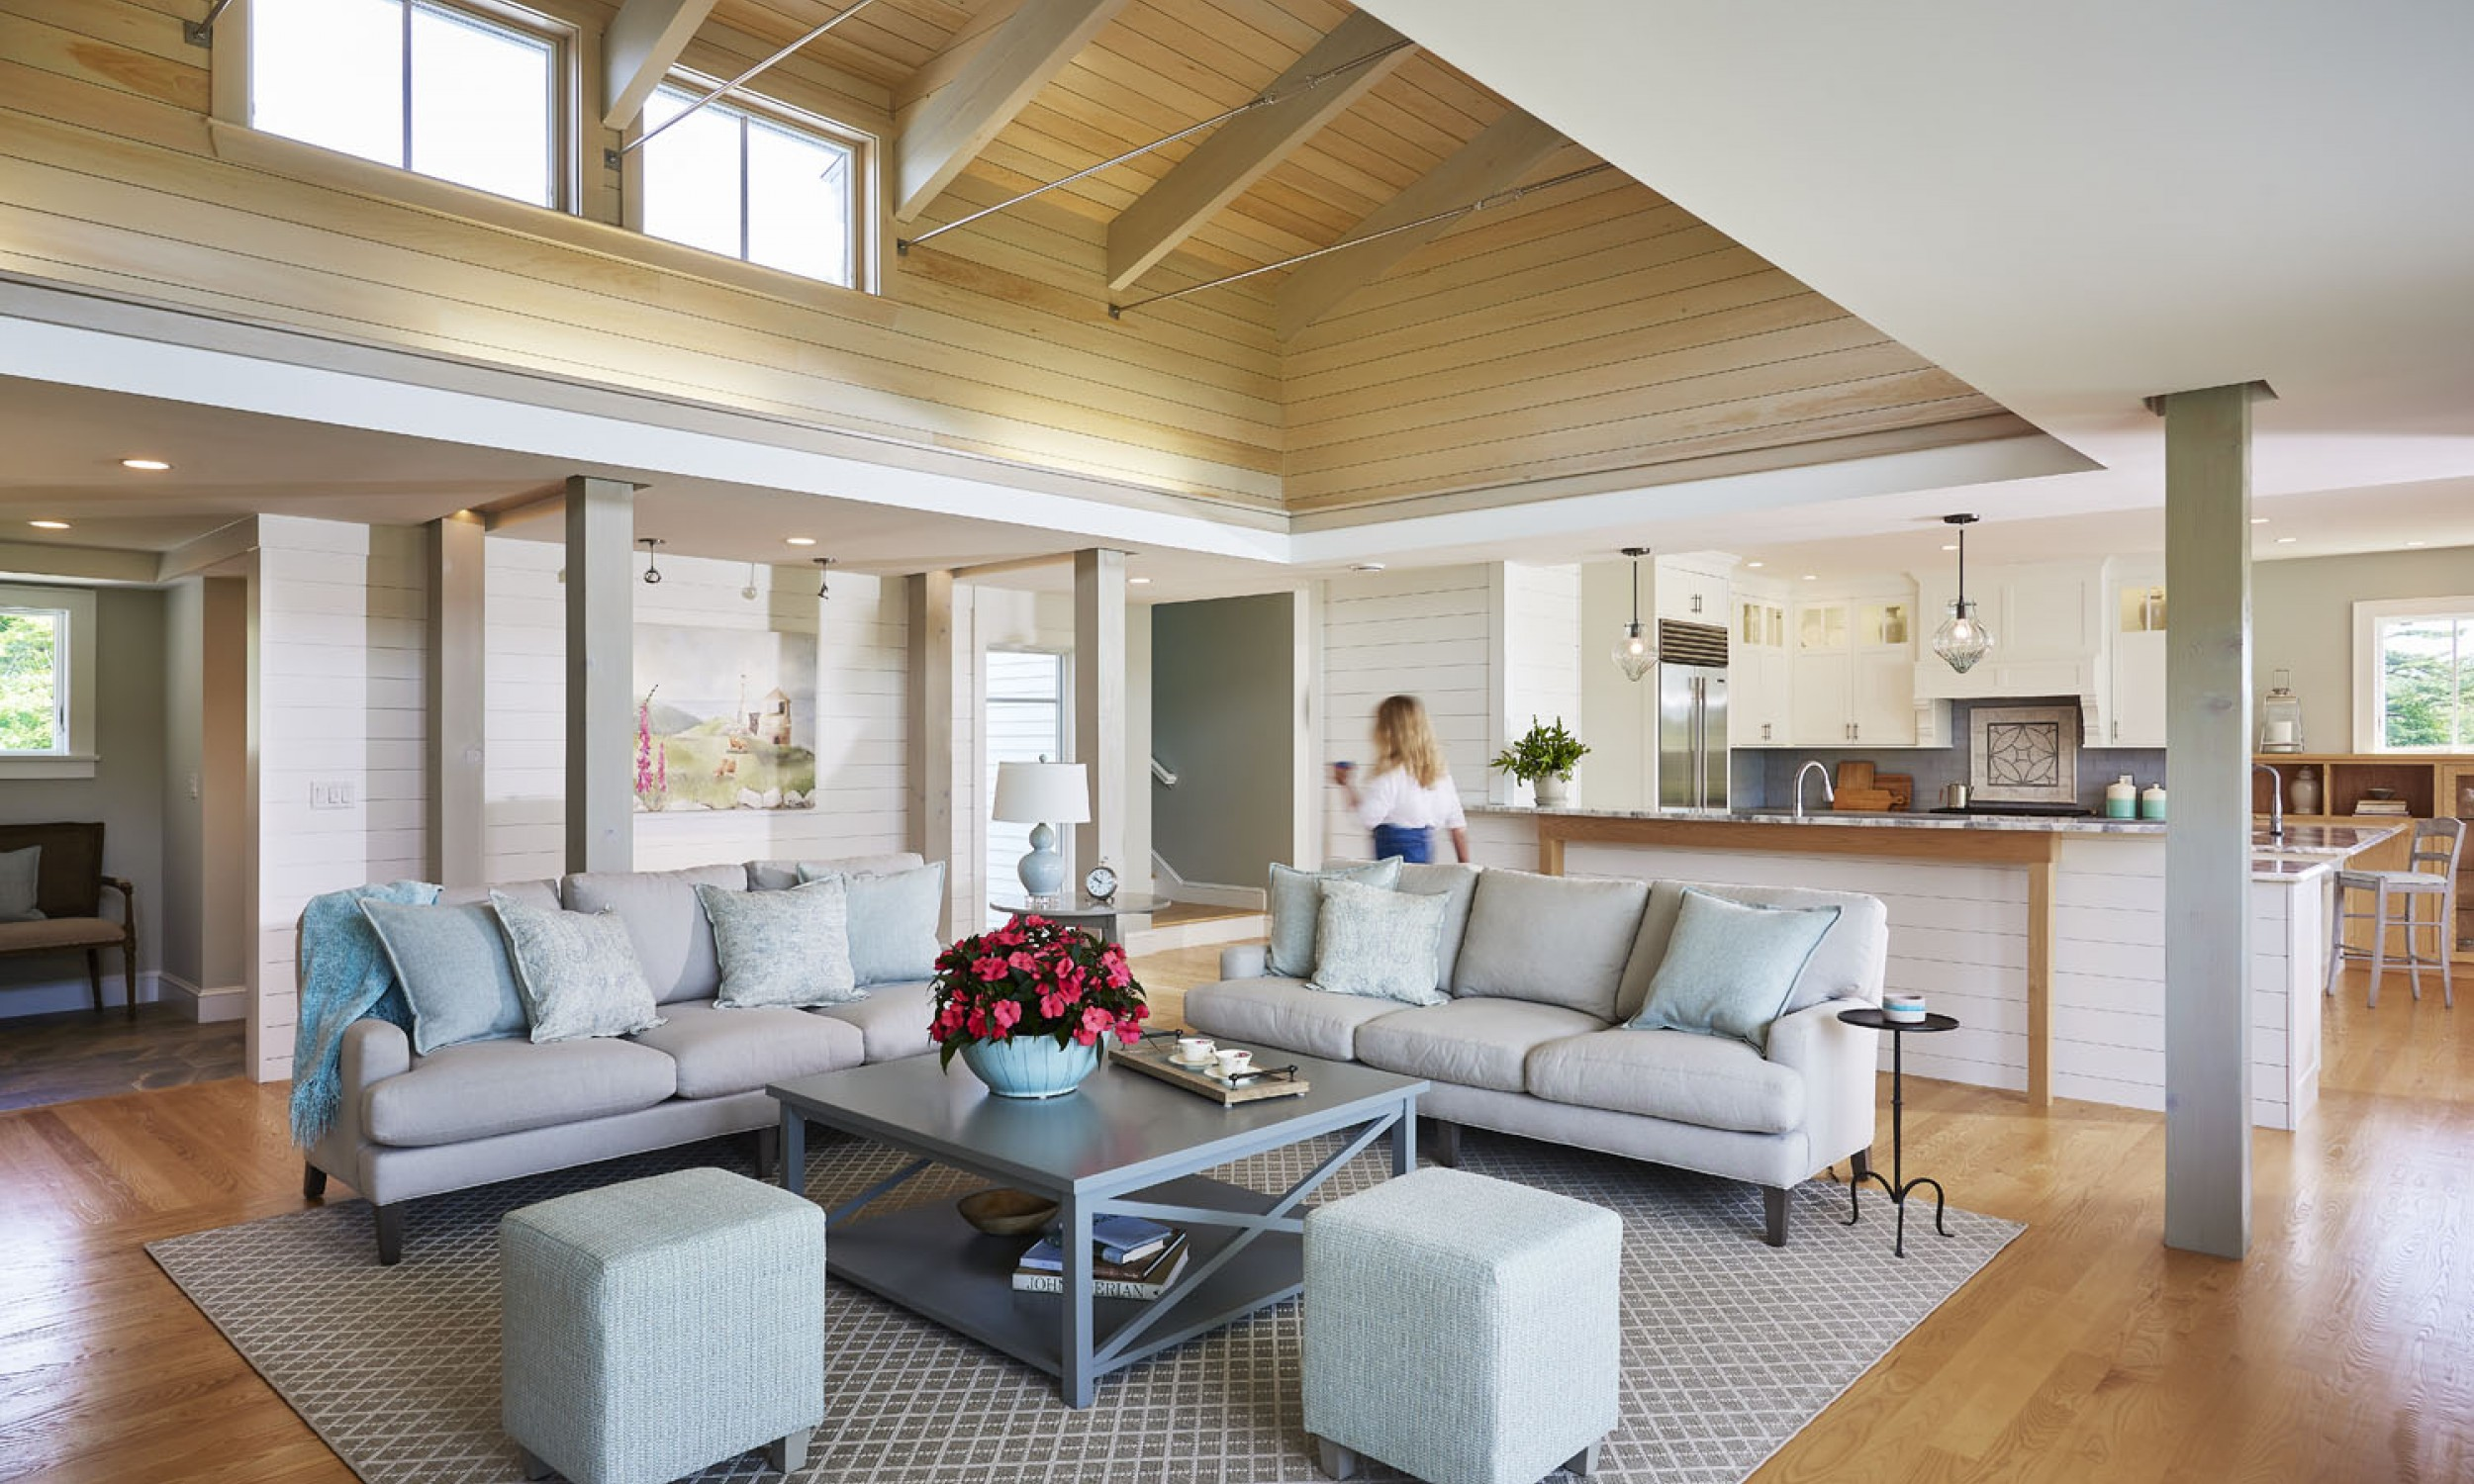 wood ceiling, cathedral ceiling, wood floors